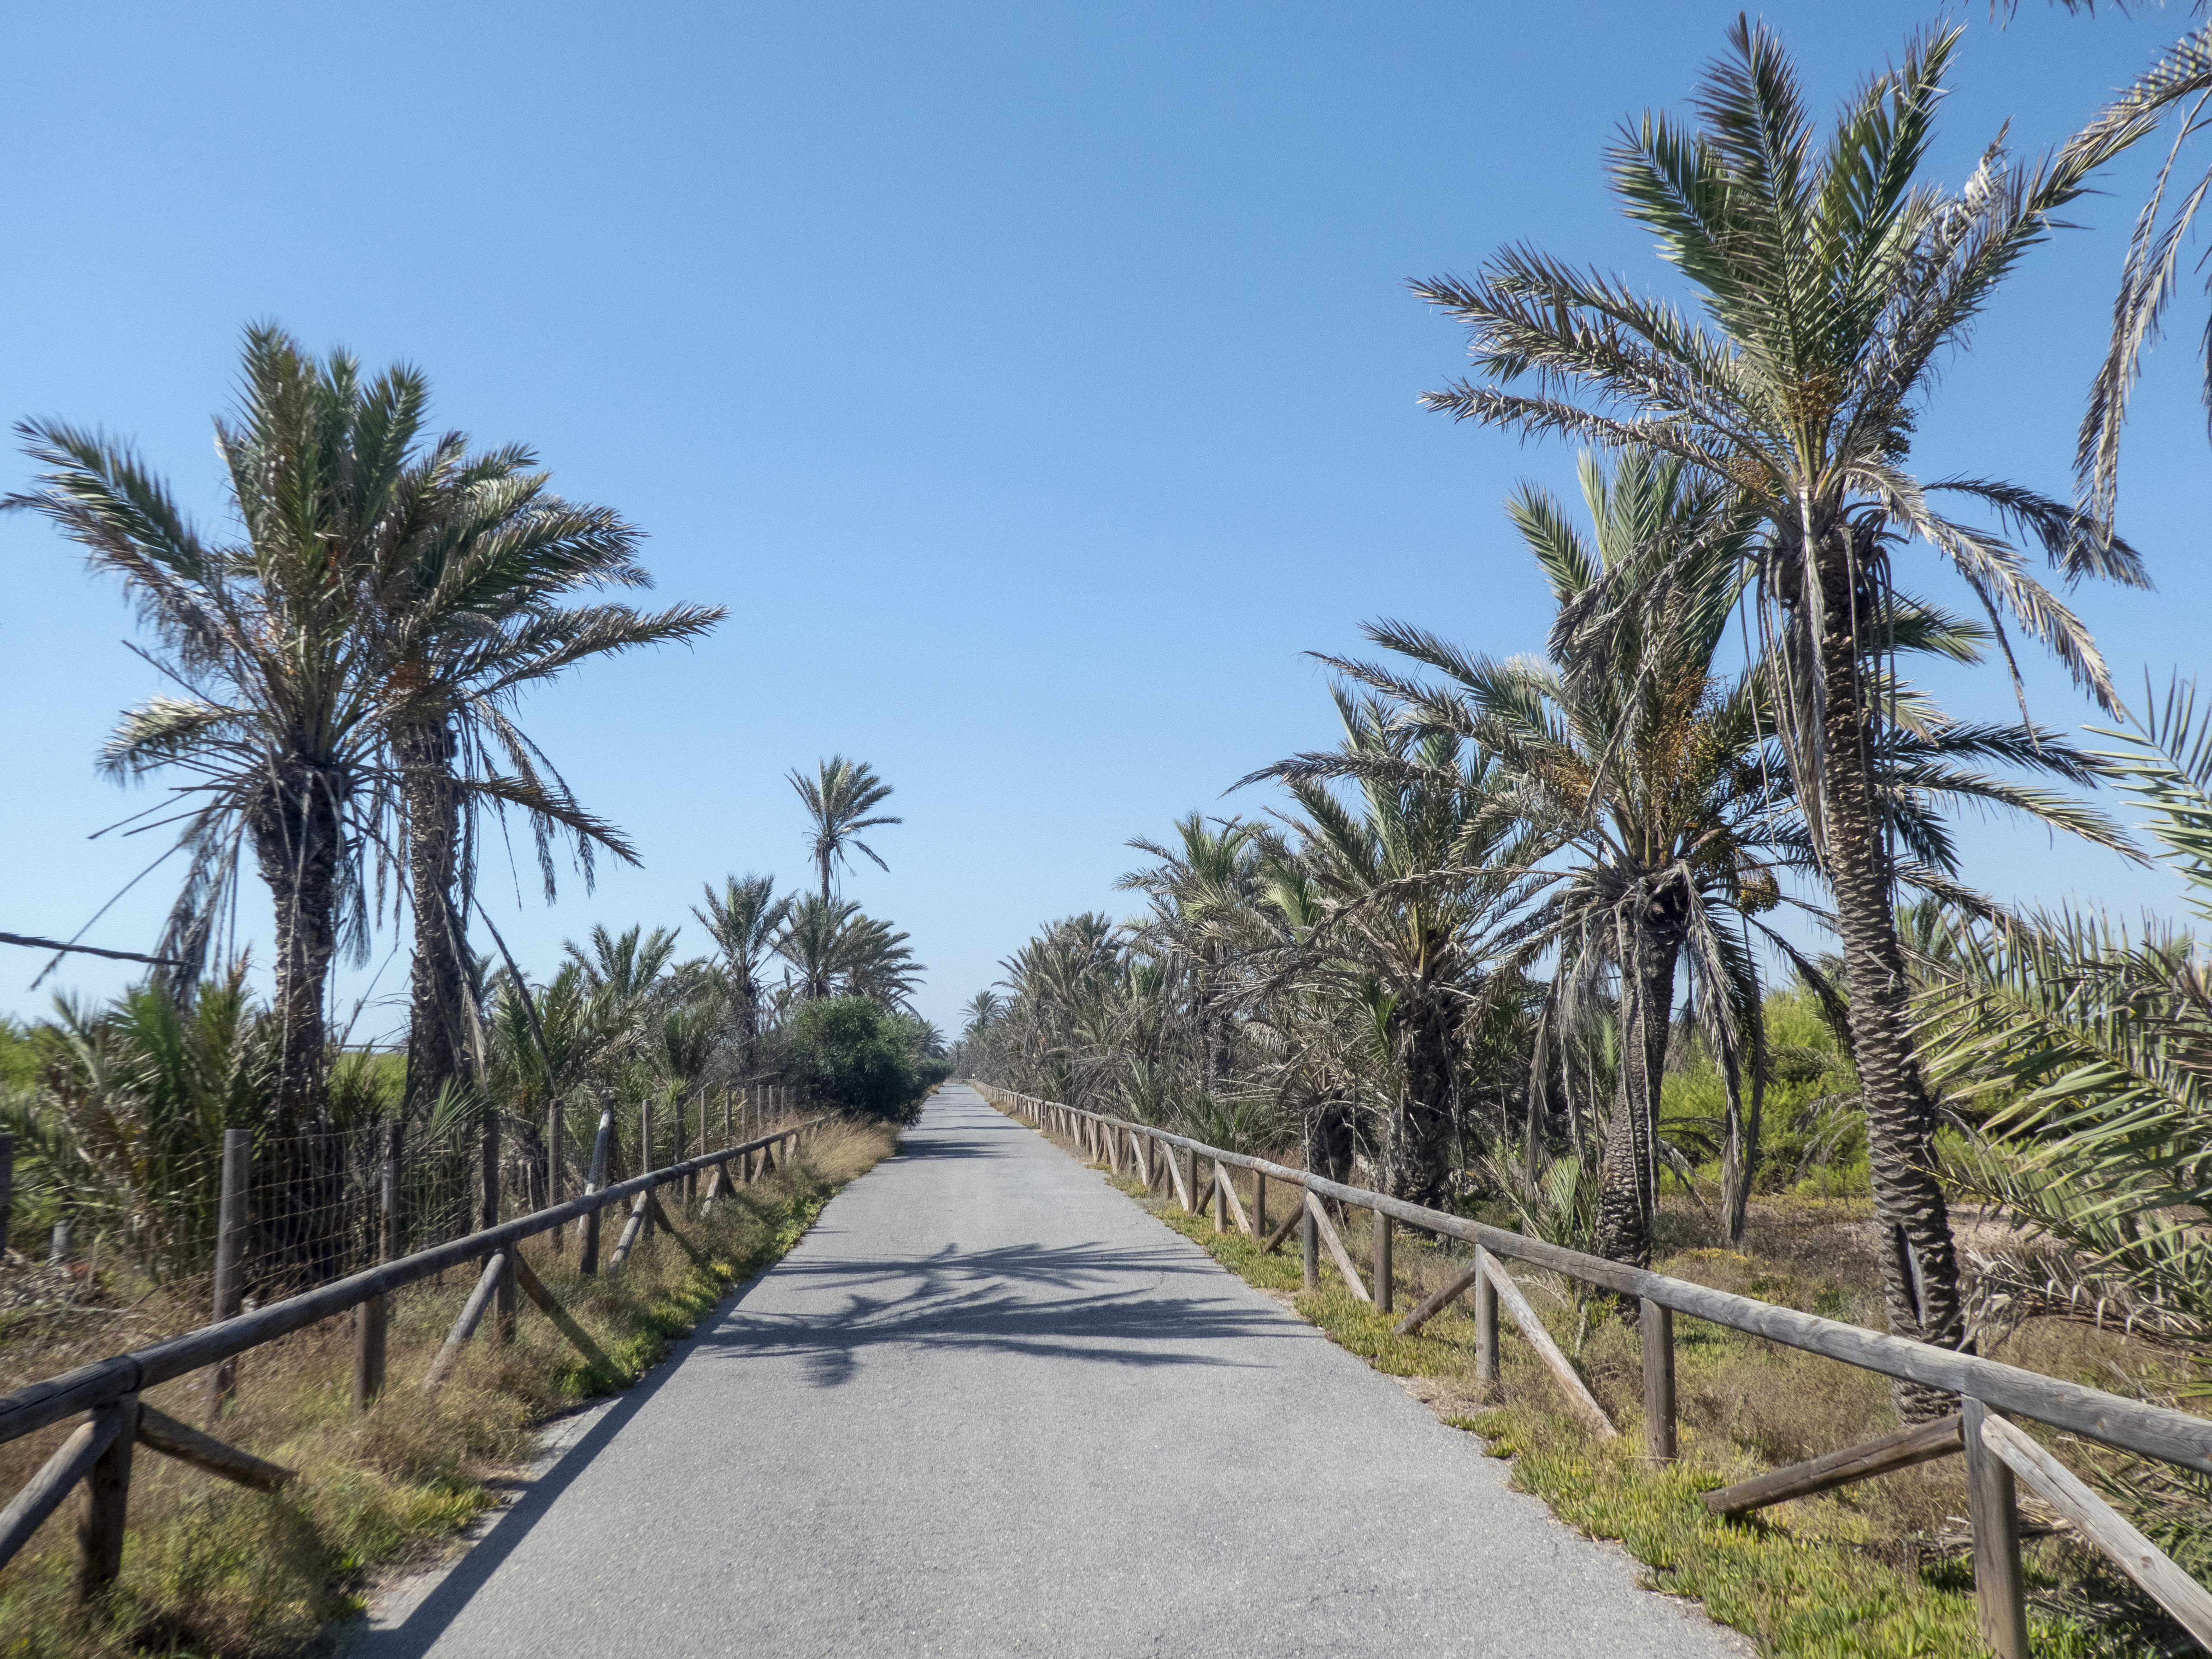 Five Easy Walks in the Vega Baja